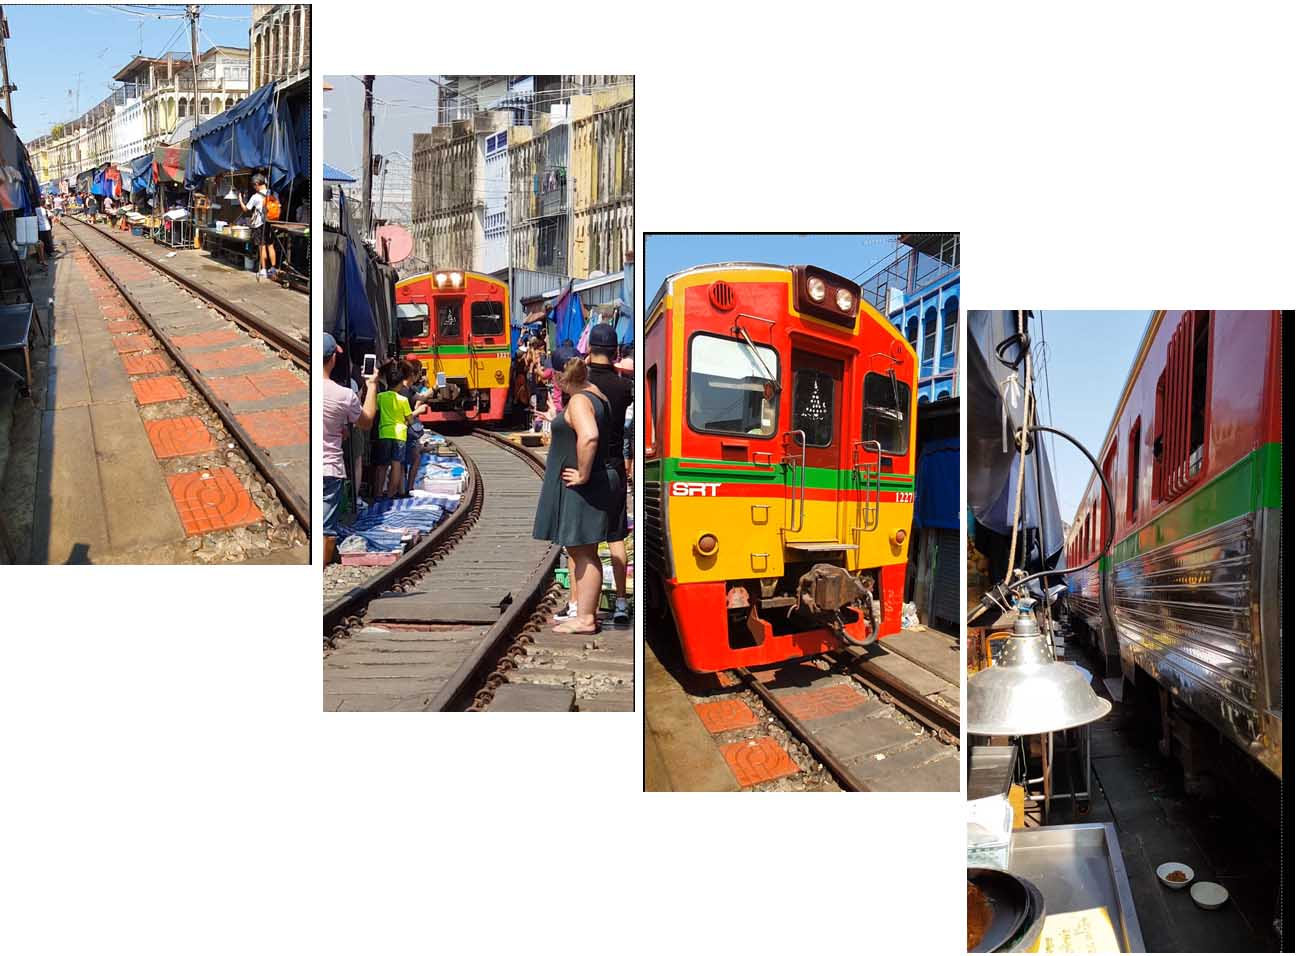 Arrival of the train at Maeklong Train Market